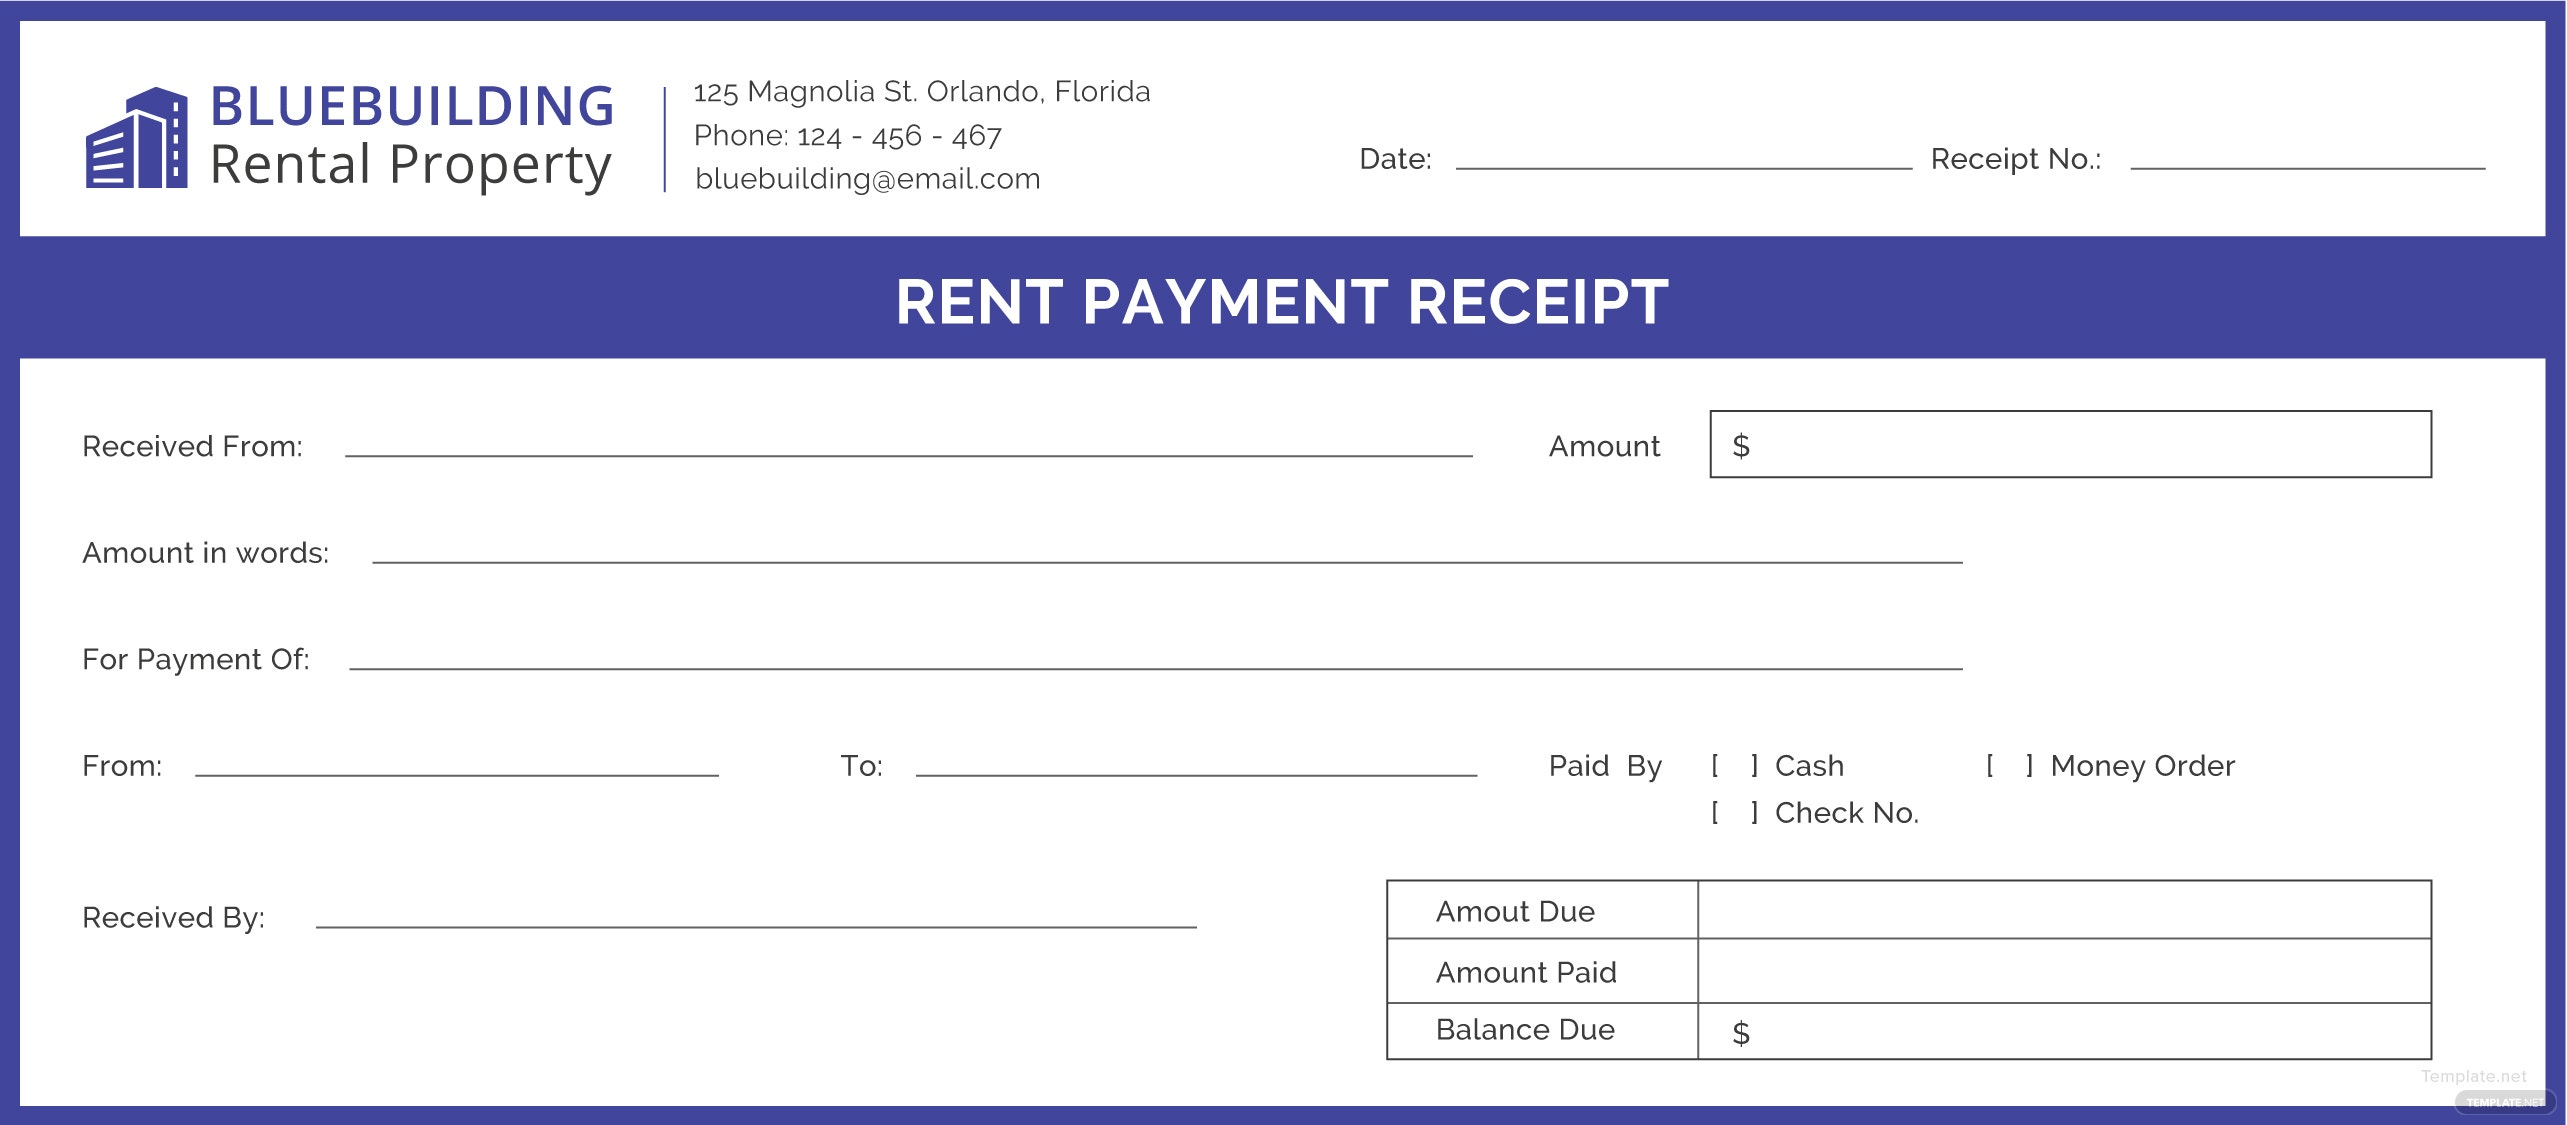 Free Rent Payment Receipt Template In Adobe Illustrator Microsoft - Rent payment receipt template